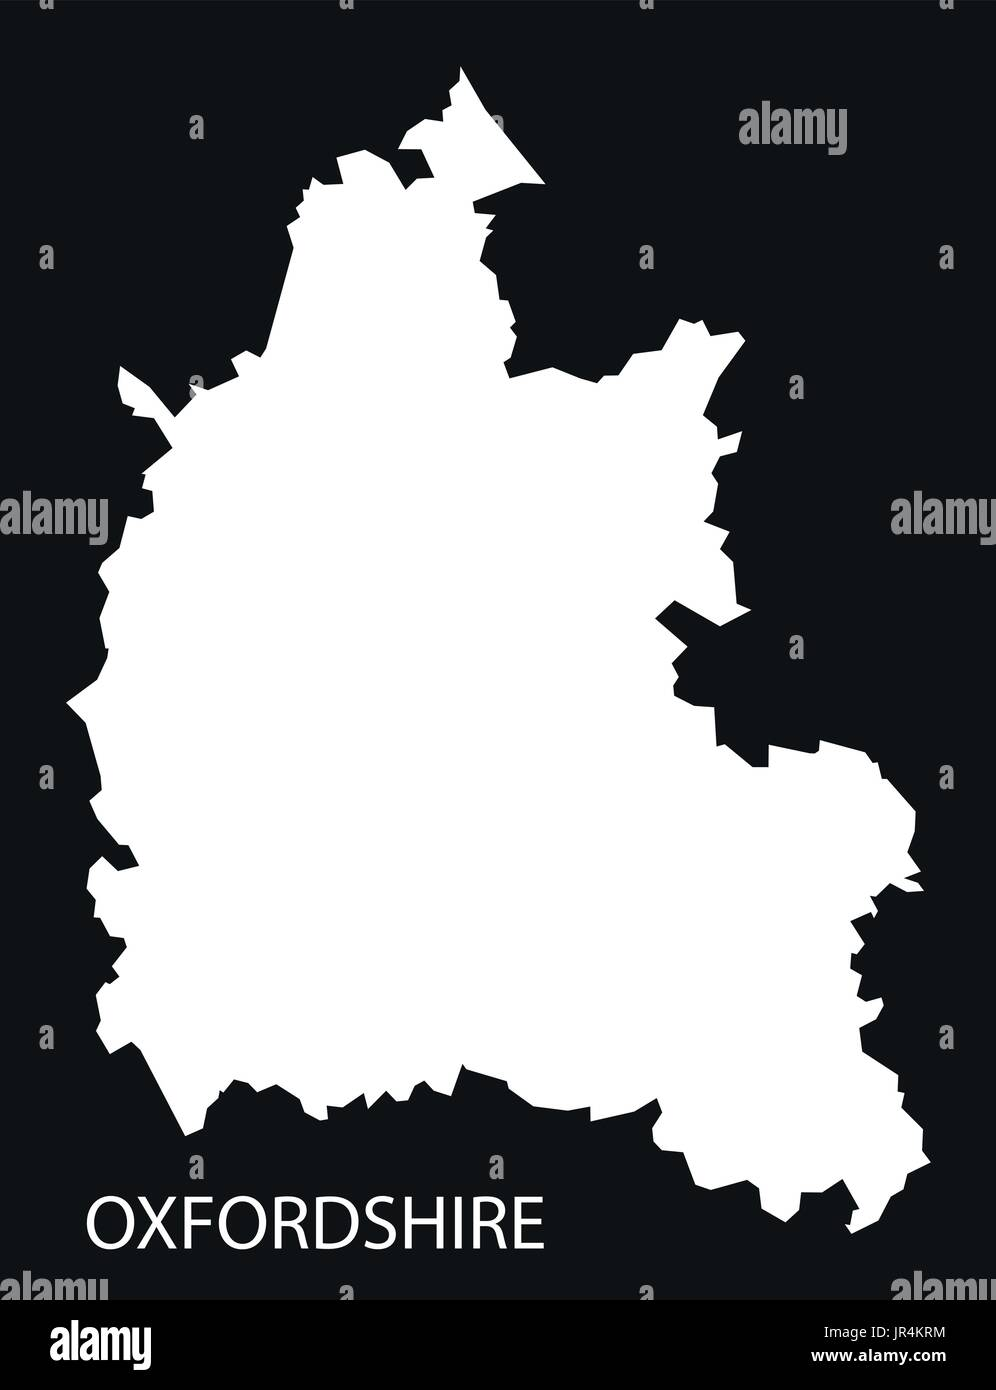 Oxfordshire England Uk Map Black Inverted Silhouette Illustration